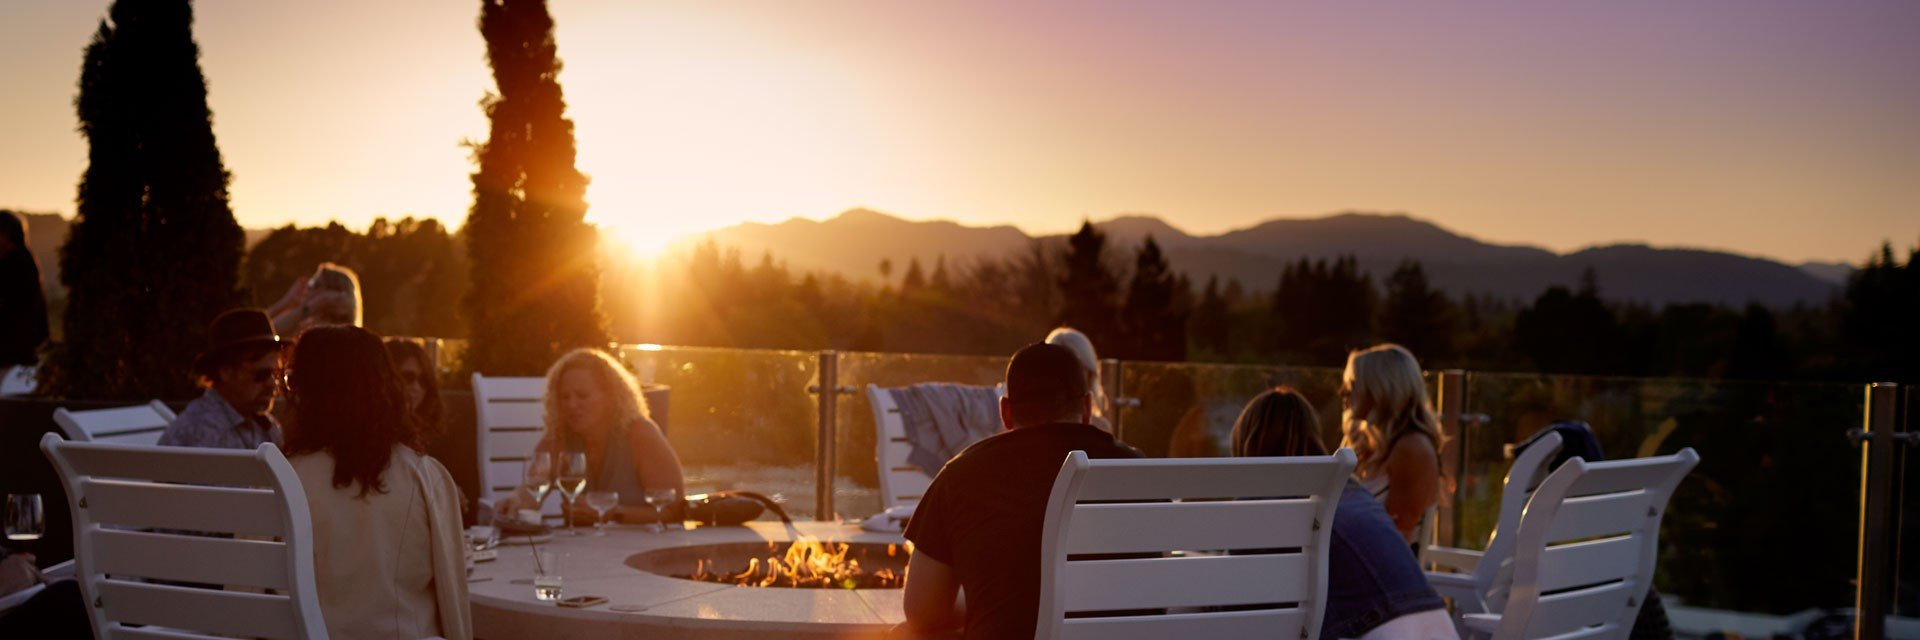 Archer Hotel Napa - Sky & Vine rooftop seating with fire pit